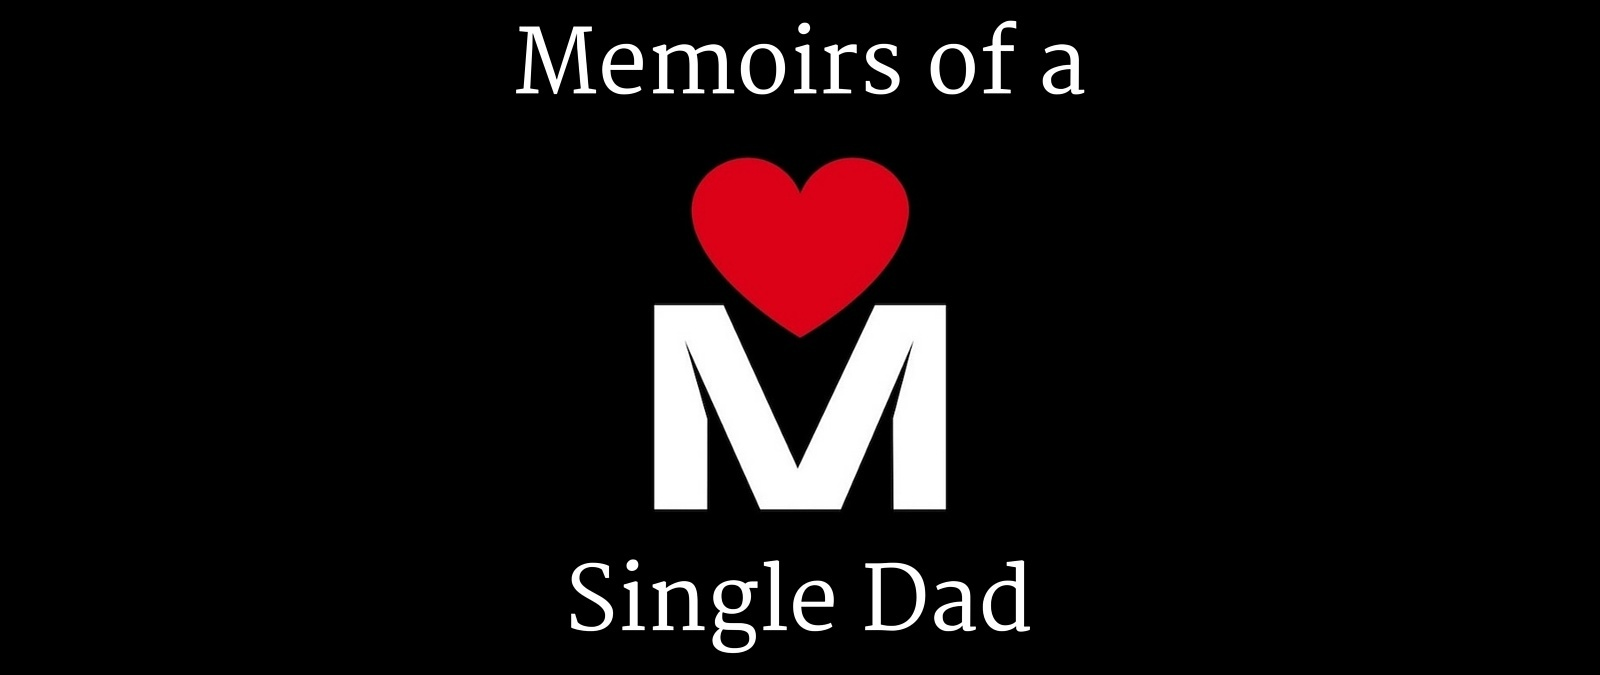 Welcome to Memoirs of a Single Dad